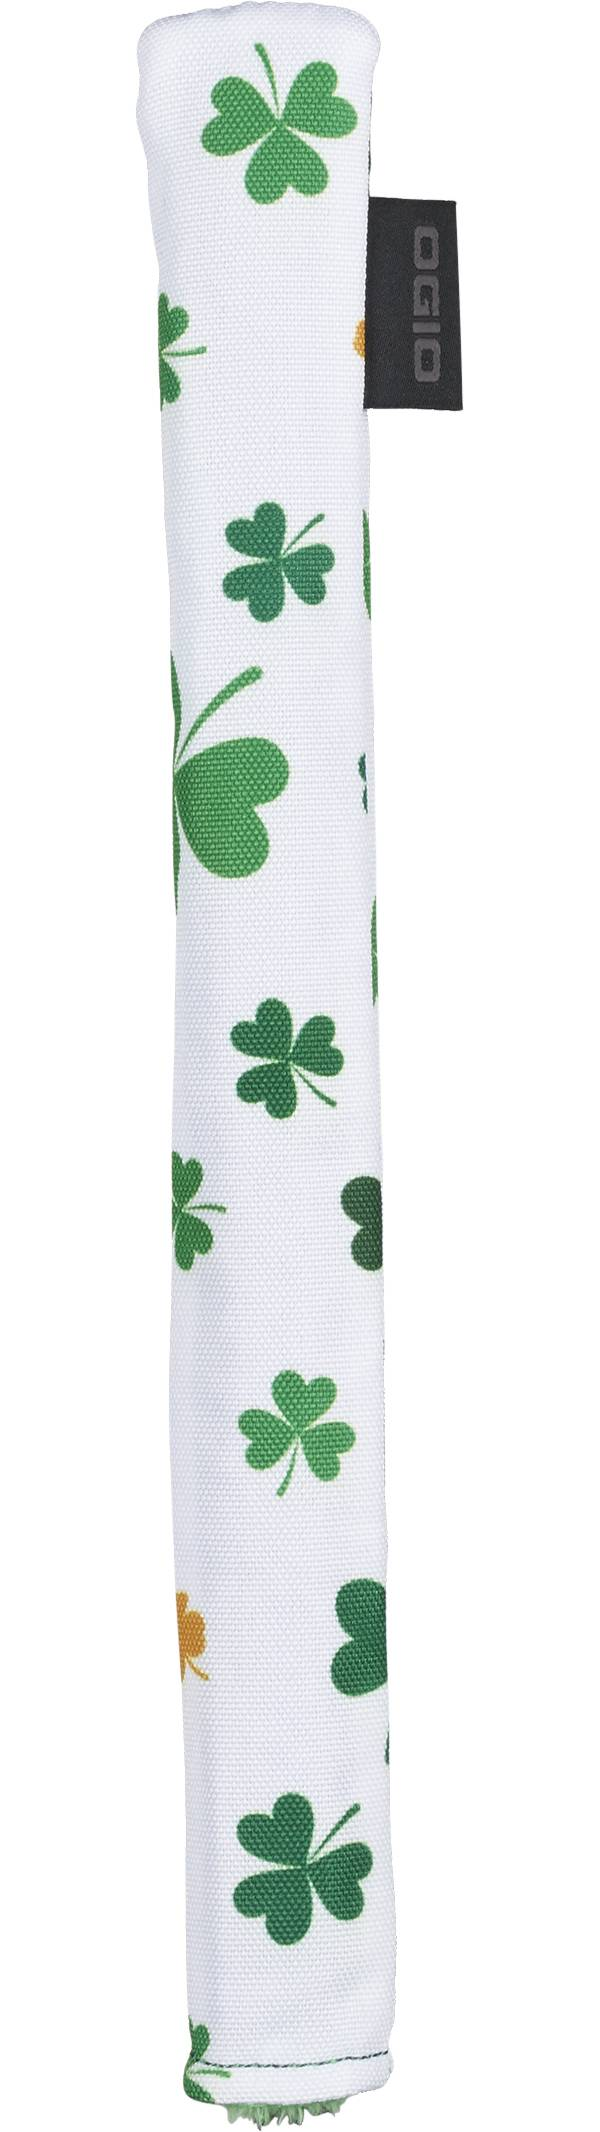 OGIO Shamrock Alignment Stick Cover product image